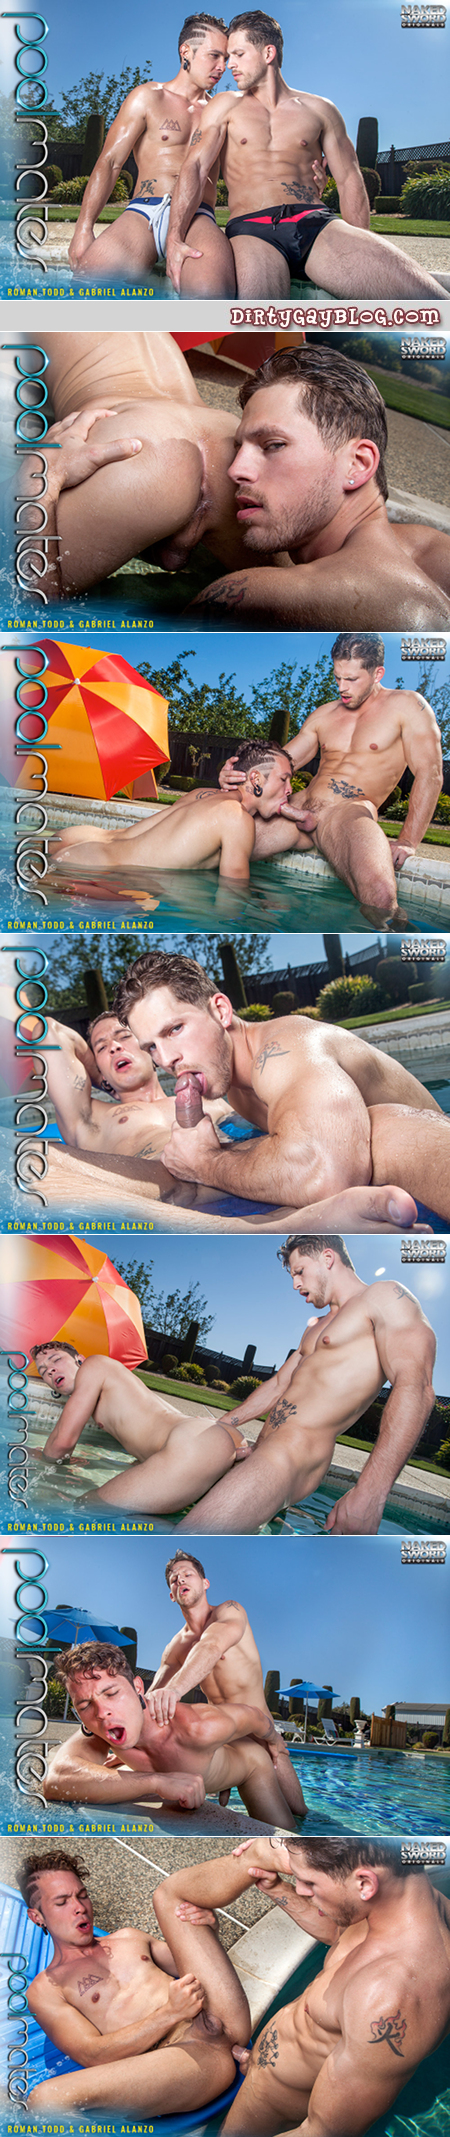 Muscular twunk fucking another guy poolside.